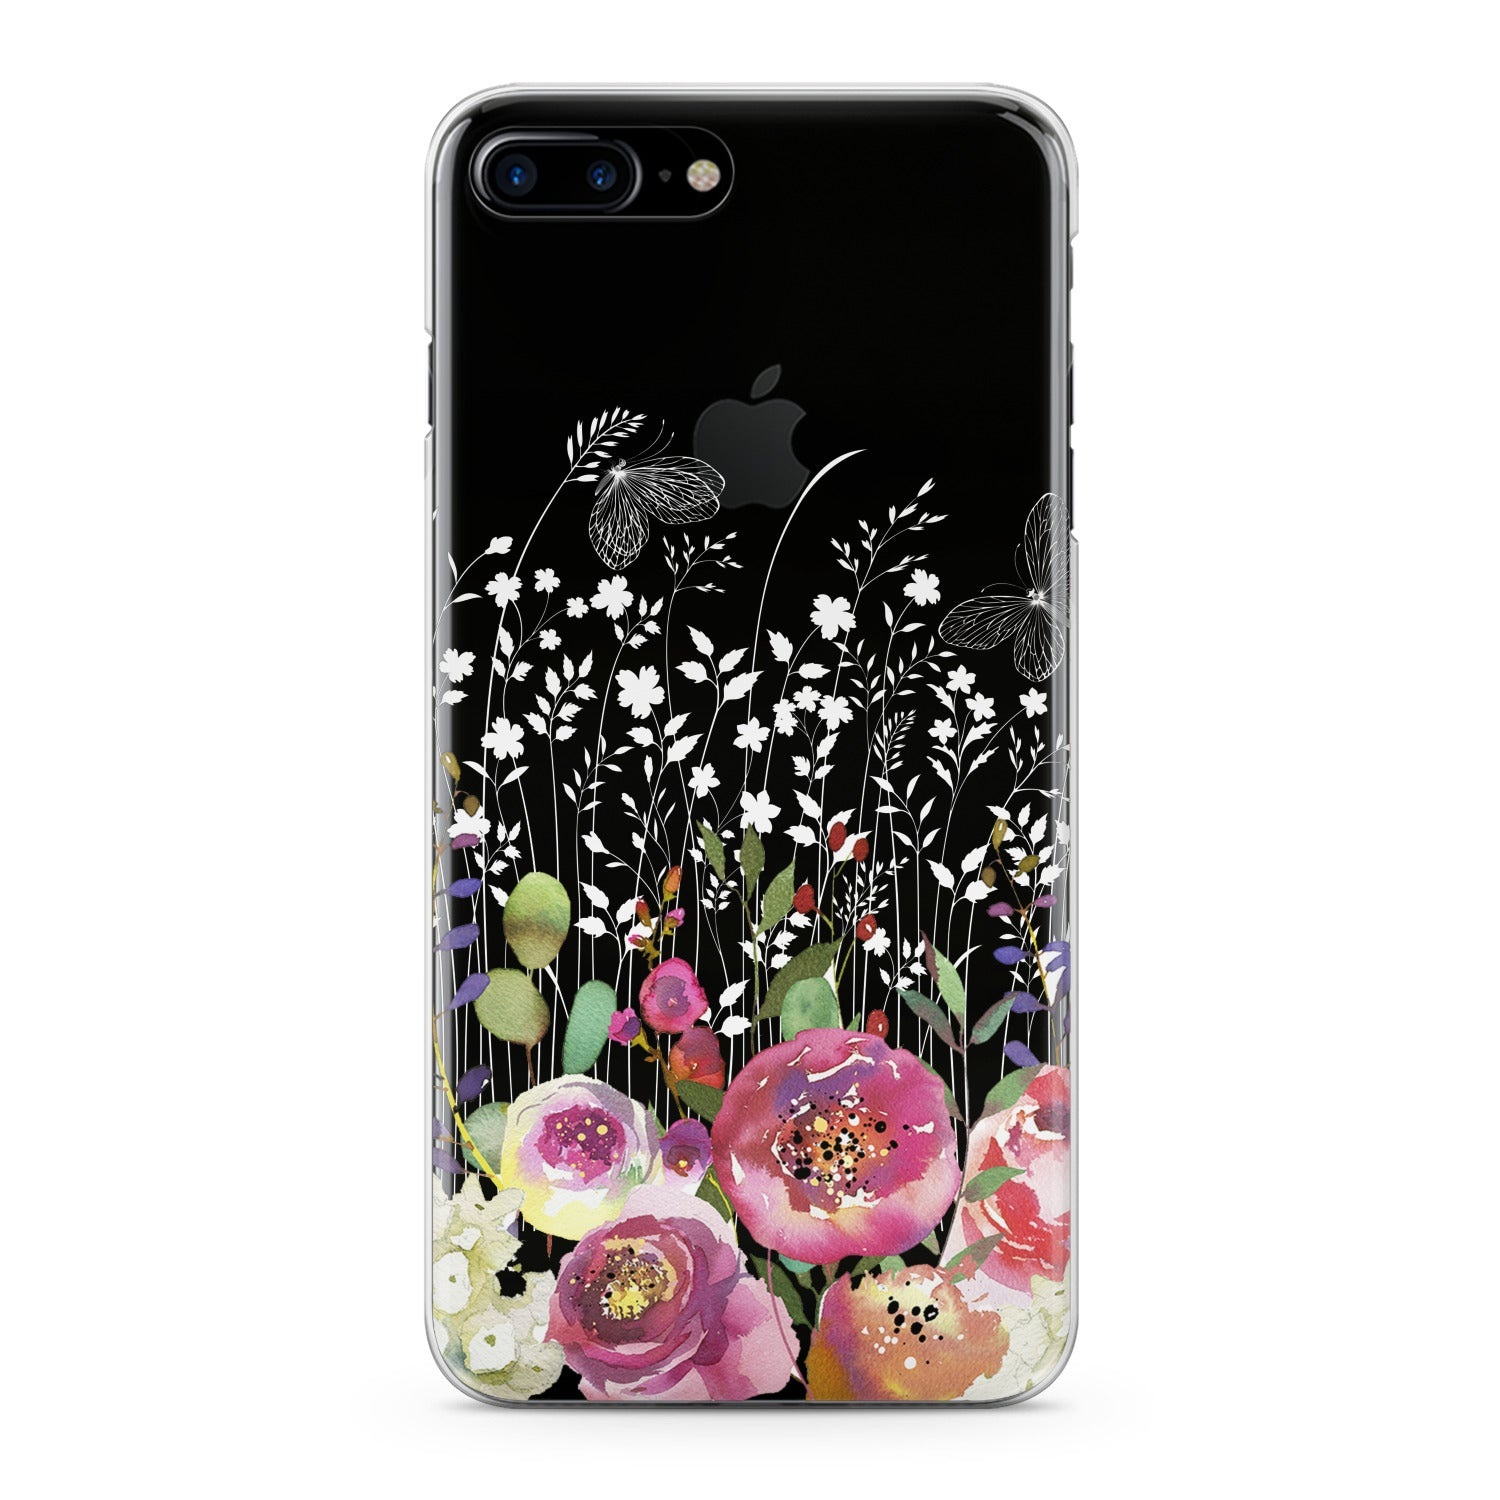 Lex Altern Garden Flowers Phone Case for your iPhone & Android phone.